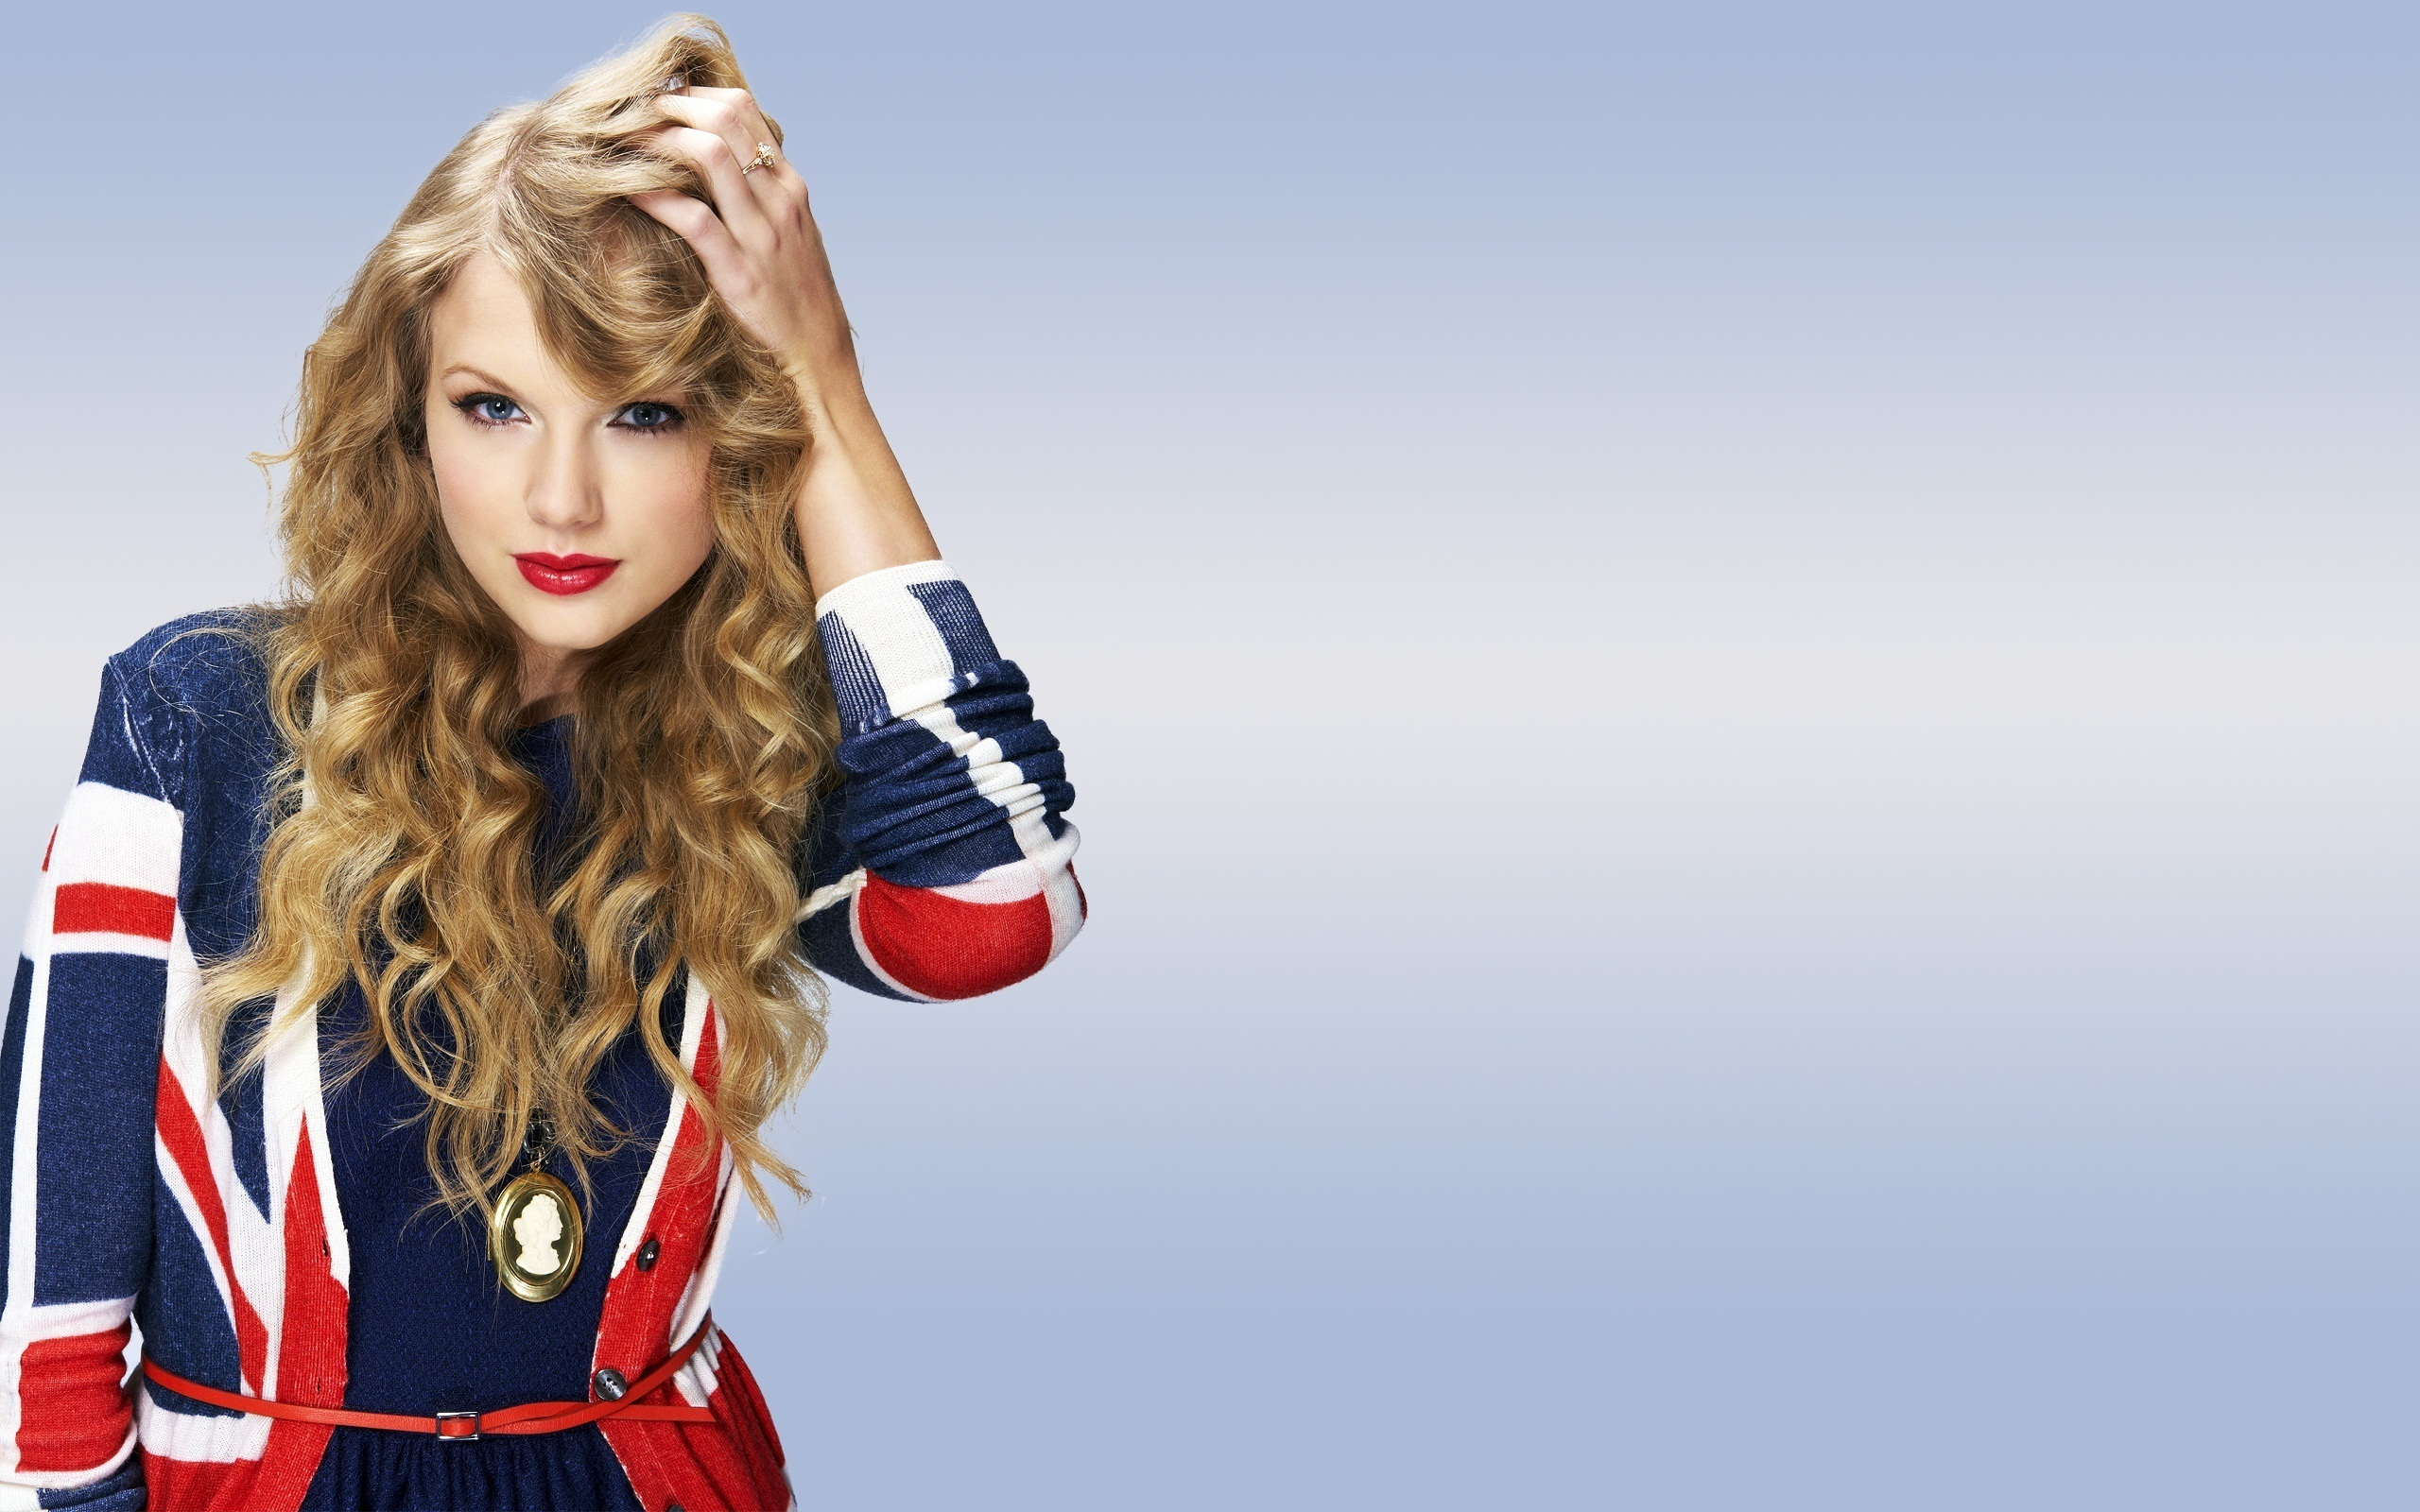 Blonde Unschuld 1989: Taylor Swift 1366x768 Free Wallpapers